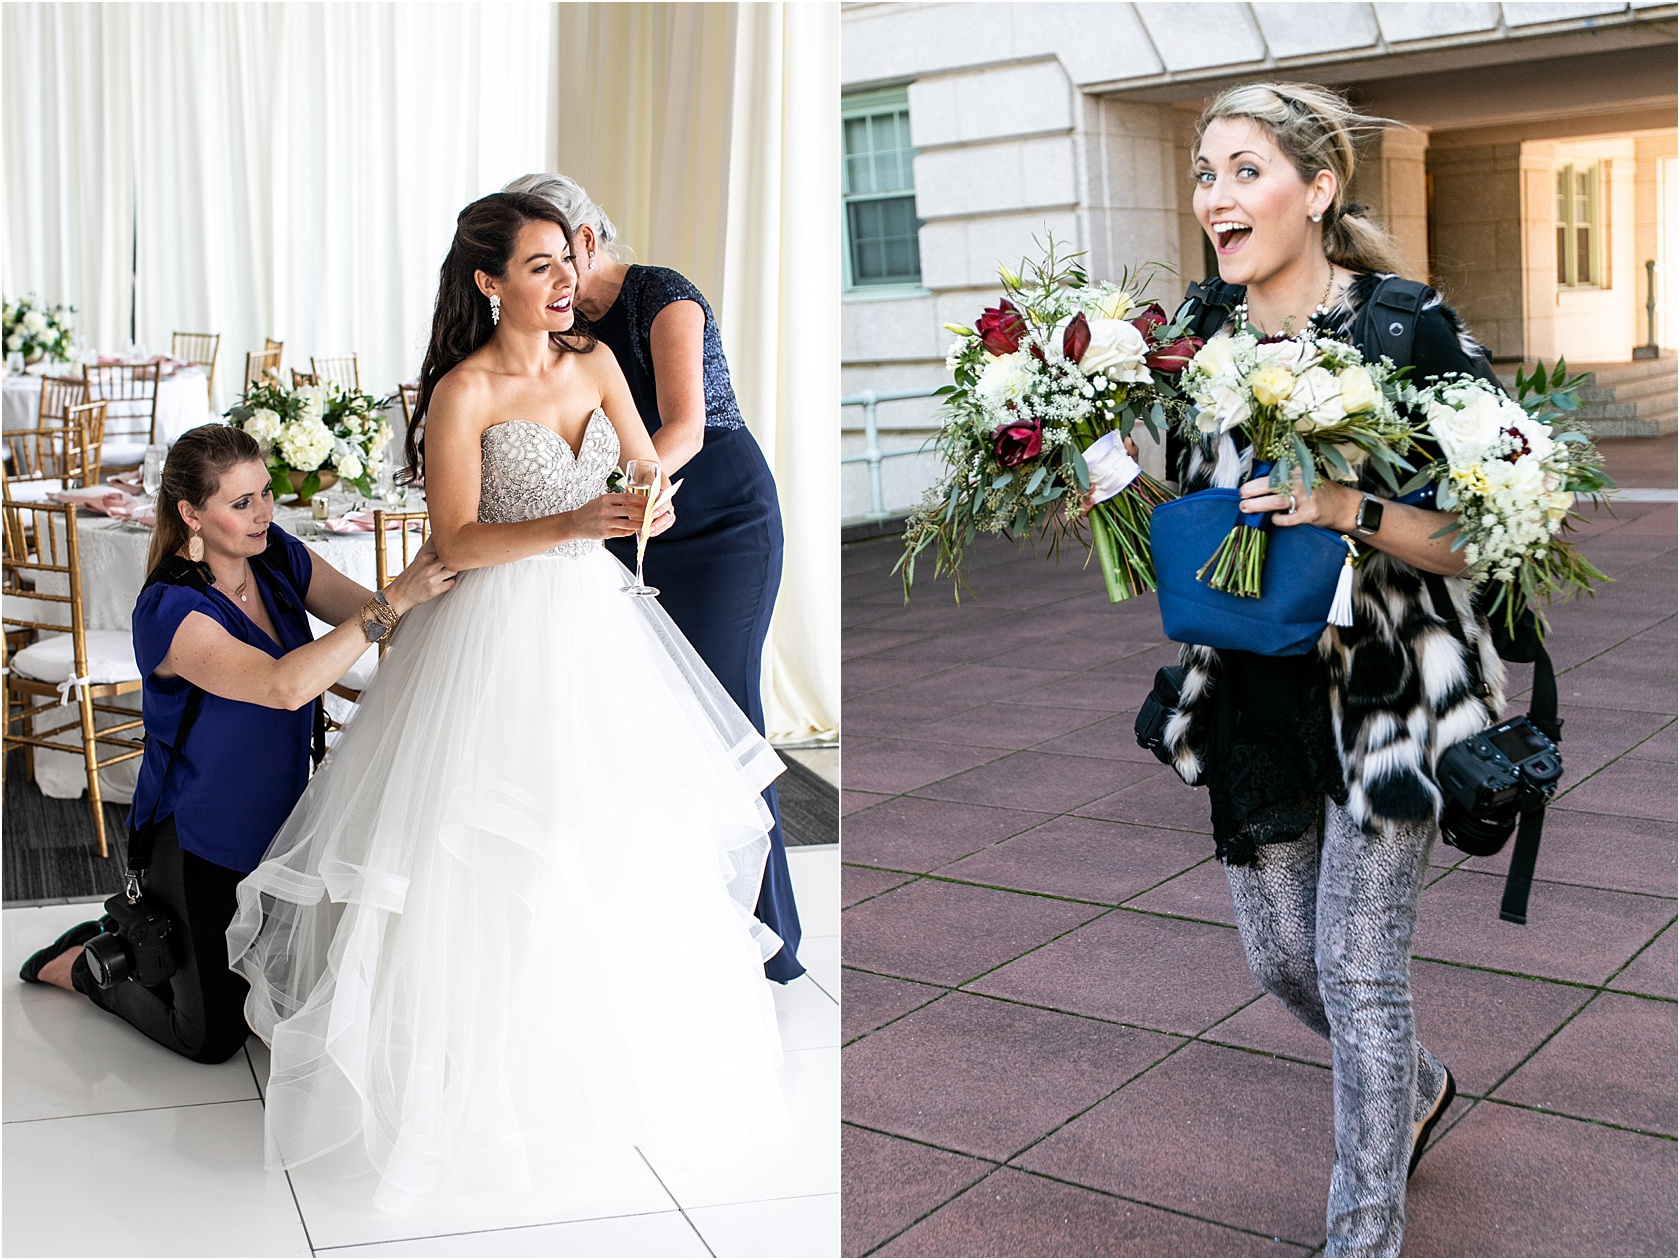 Oh, I'm not just a wedding photographer. I'll gladly bustle your train, fix your hair, help with makeup and carry florals. That's why they pay me the big bucks… (those things are not in contract lol)